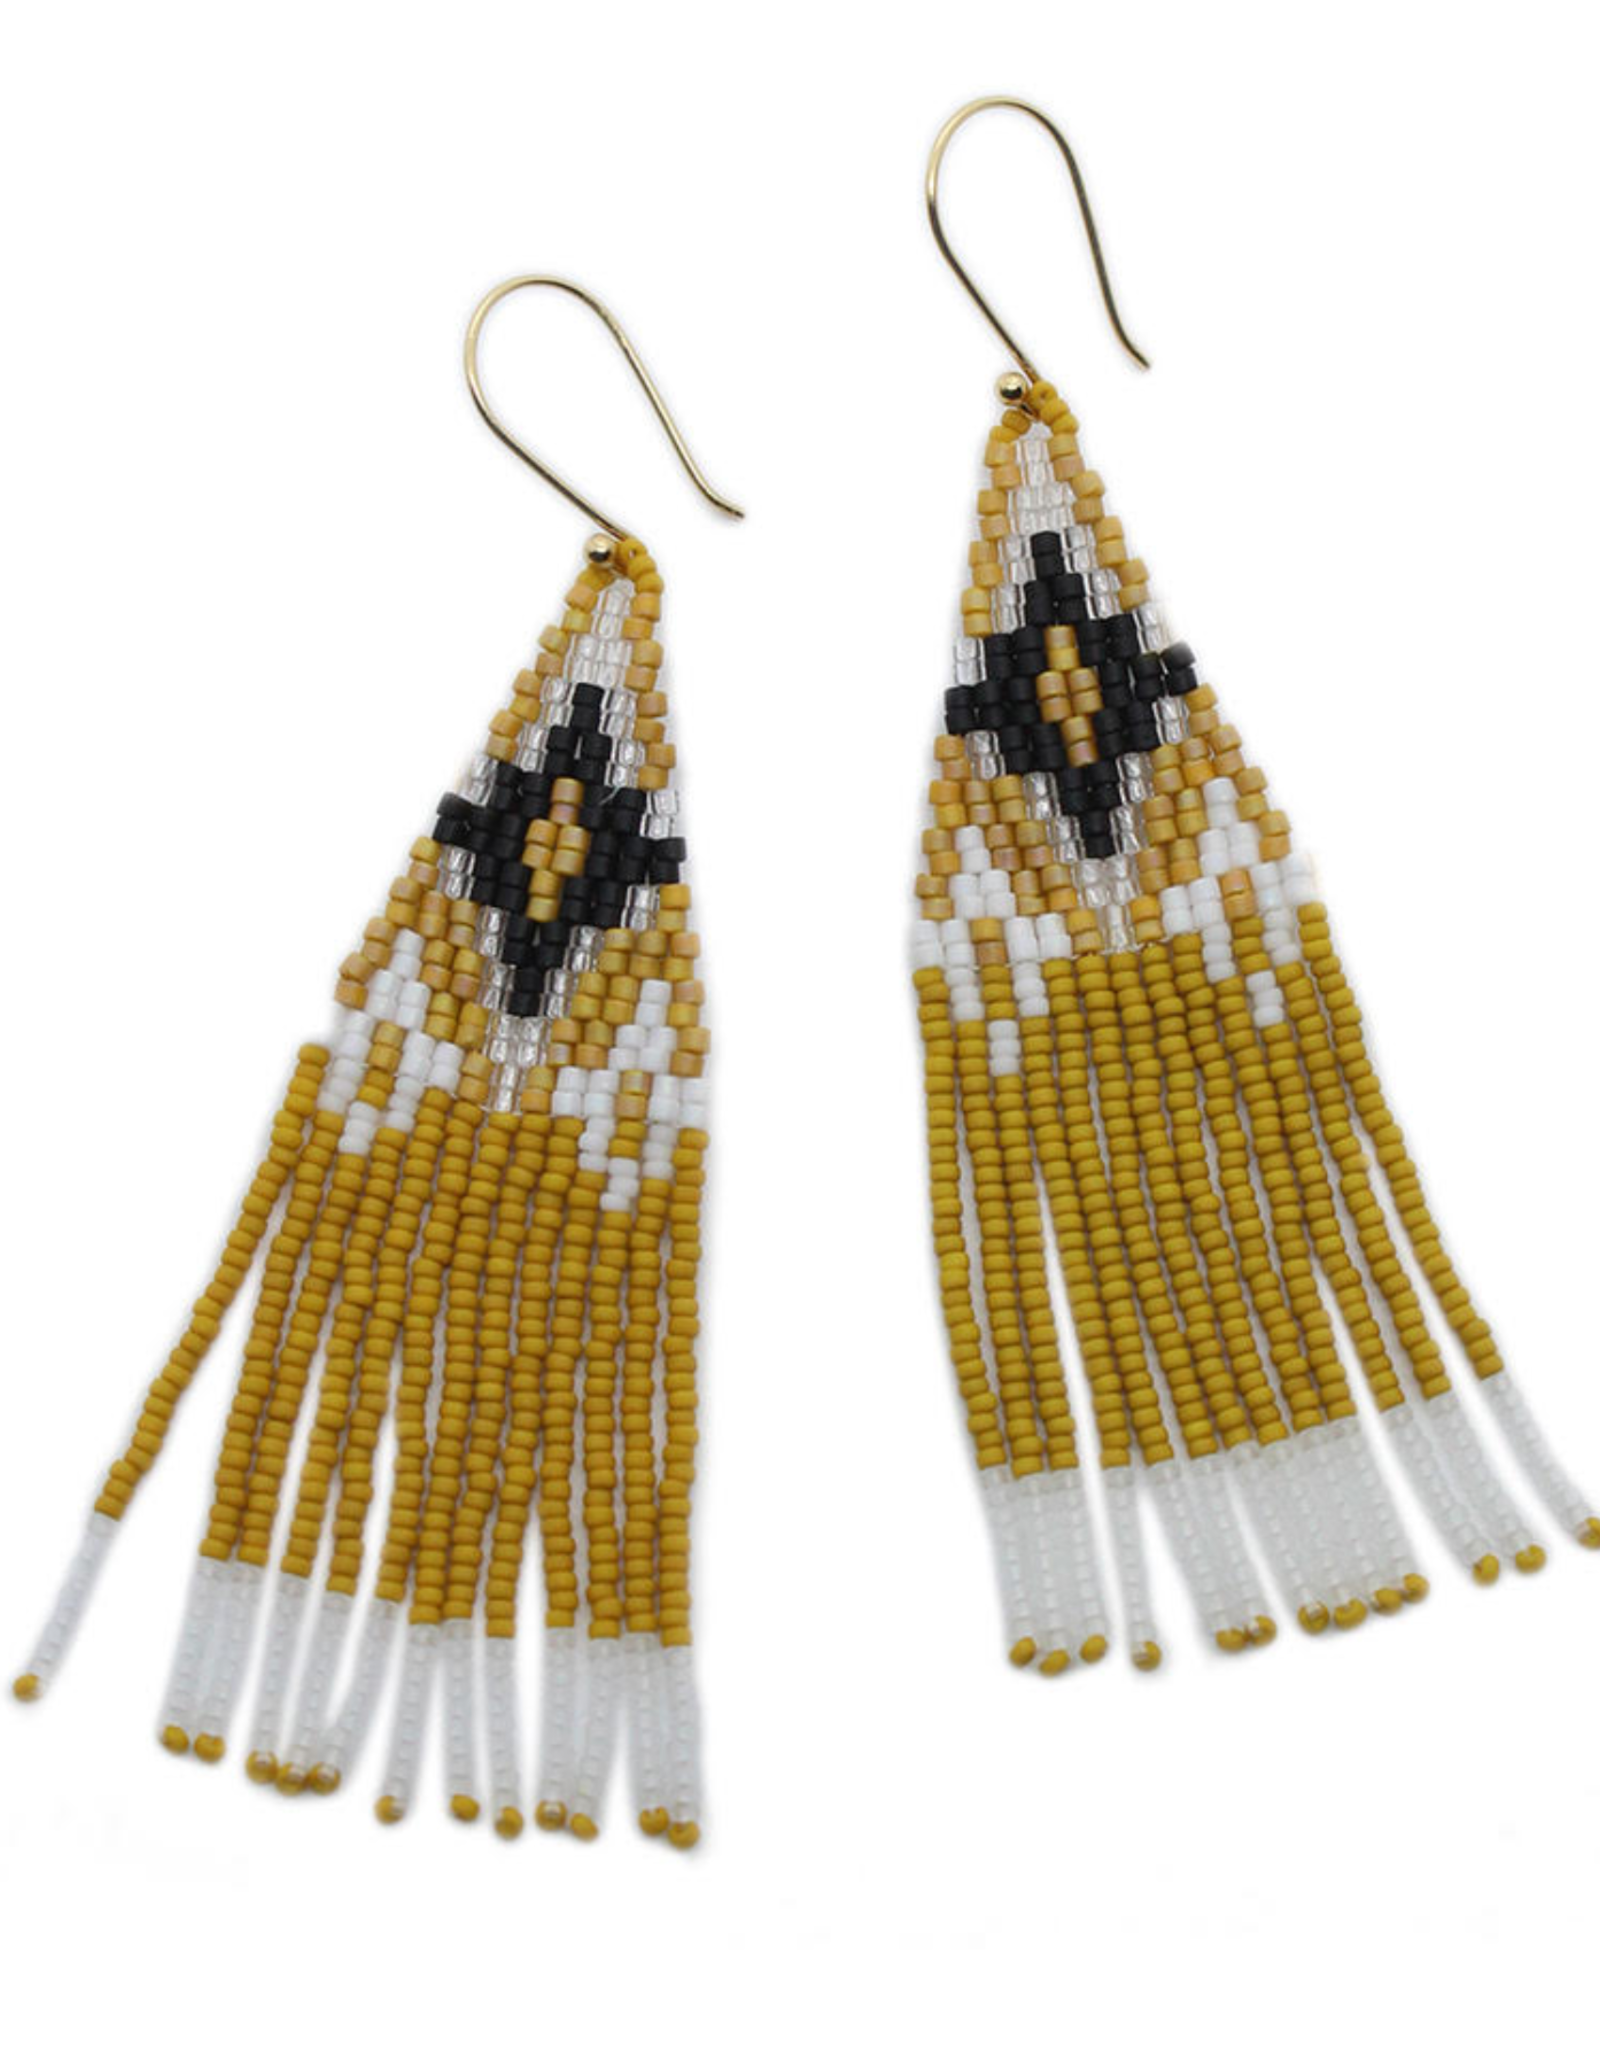 BLUMA PROJECT EARRING DANGLE OJAI AMBER YELLOW WHITE AND BLACK